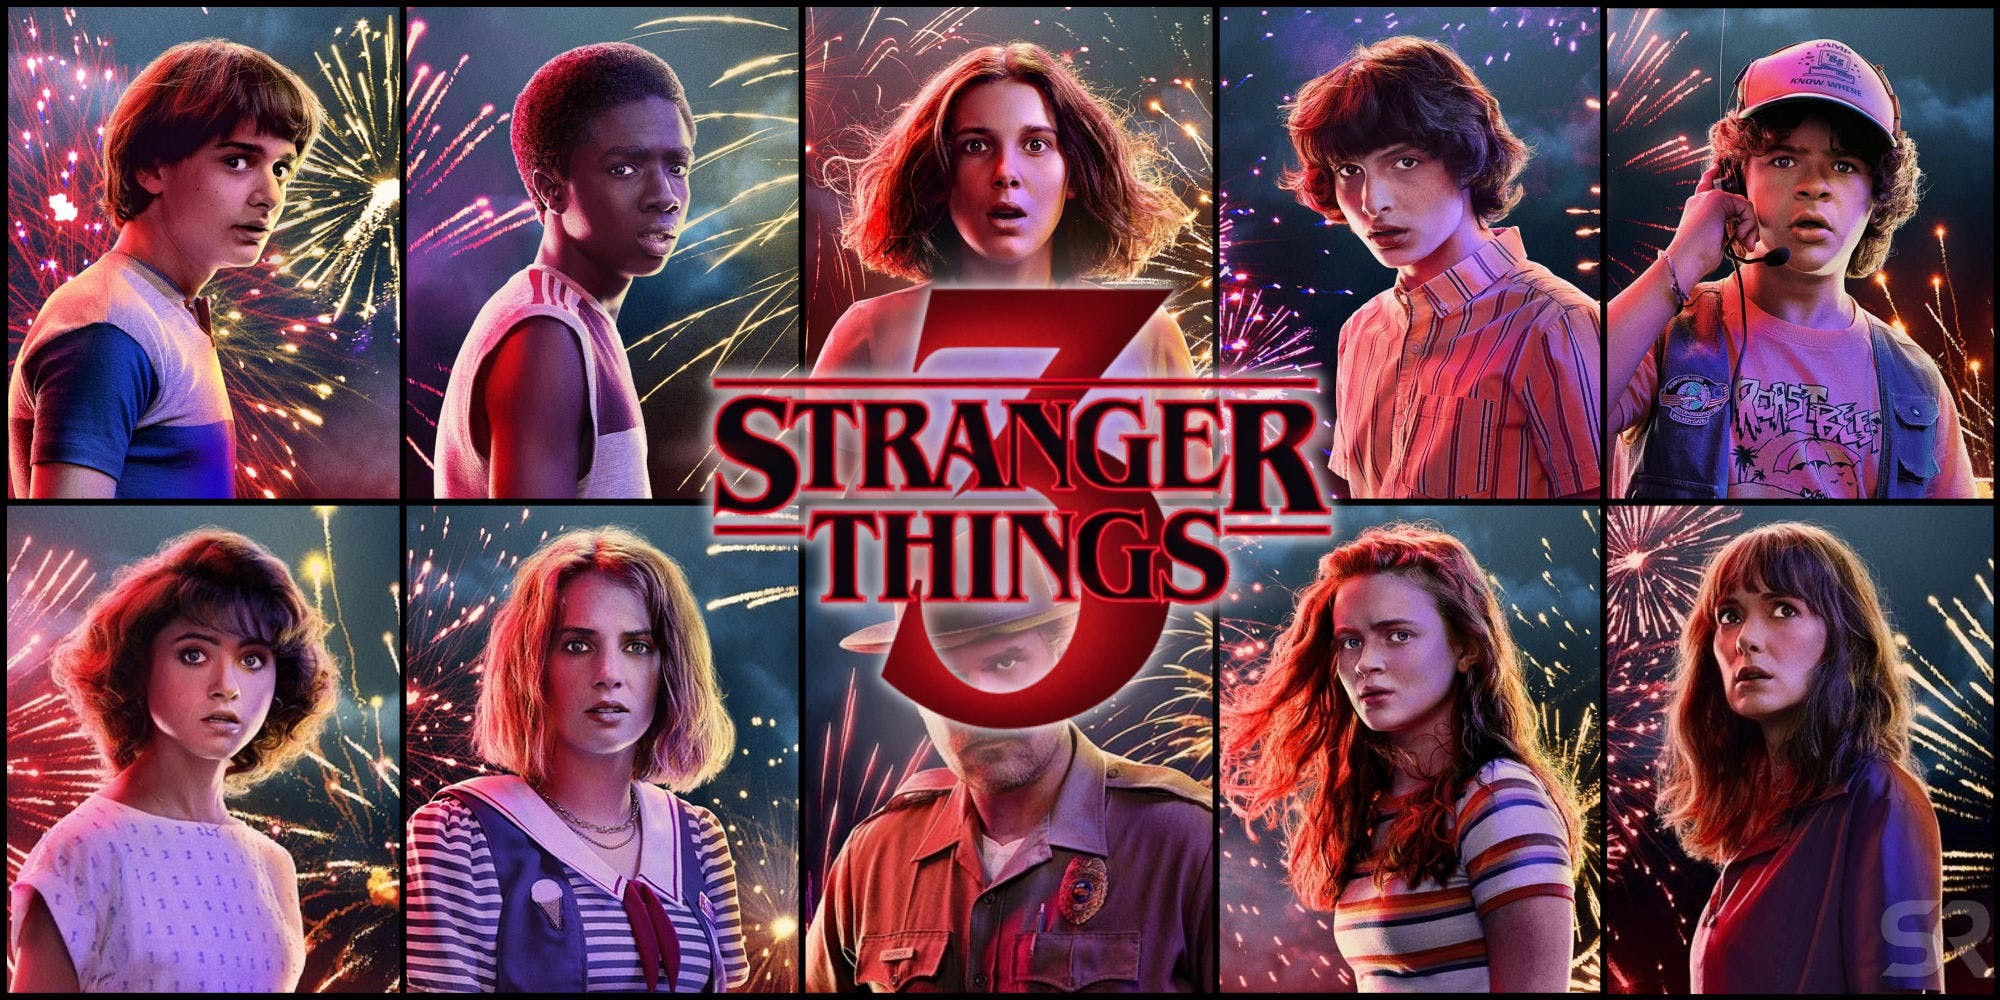 Stranger Things: Season 3 Review - Rad or Bad